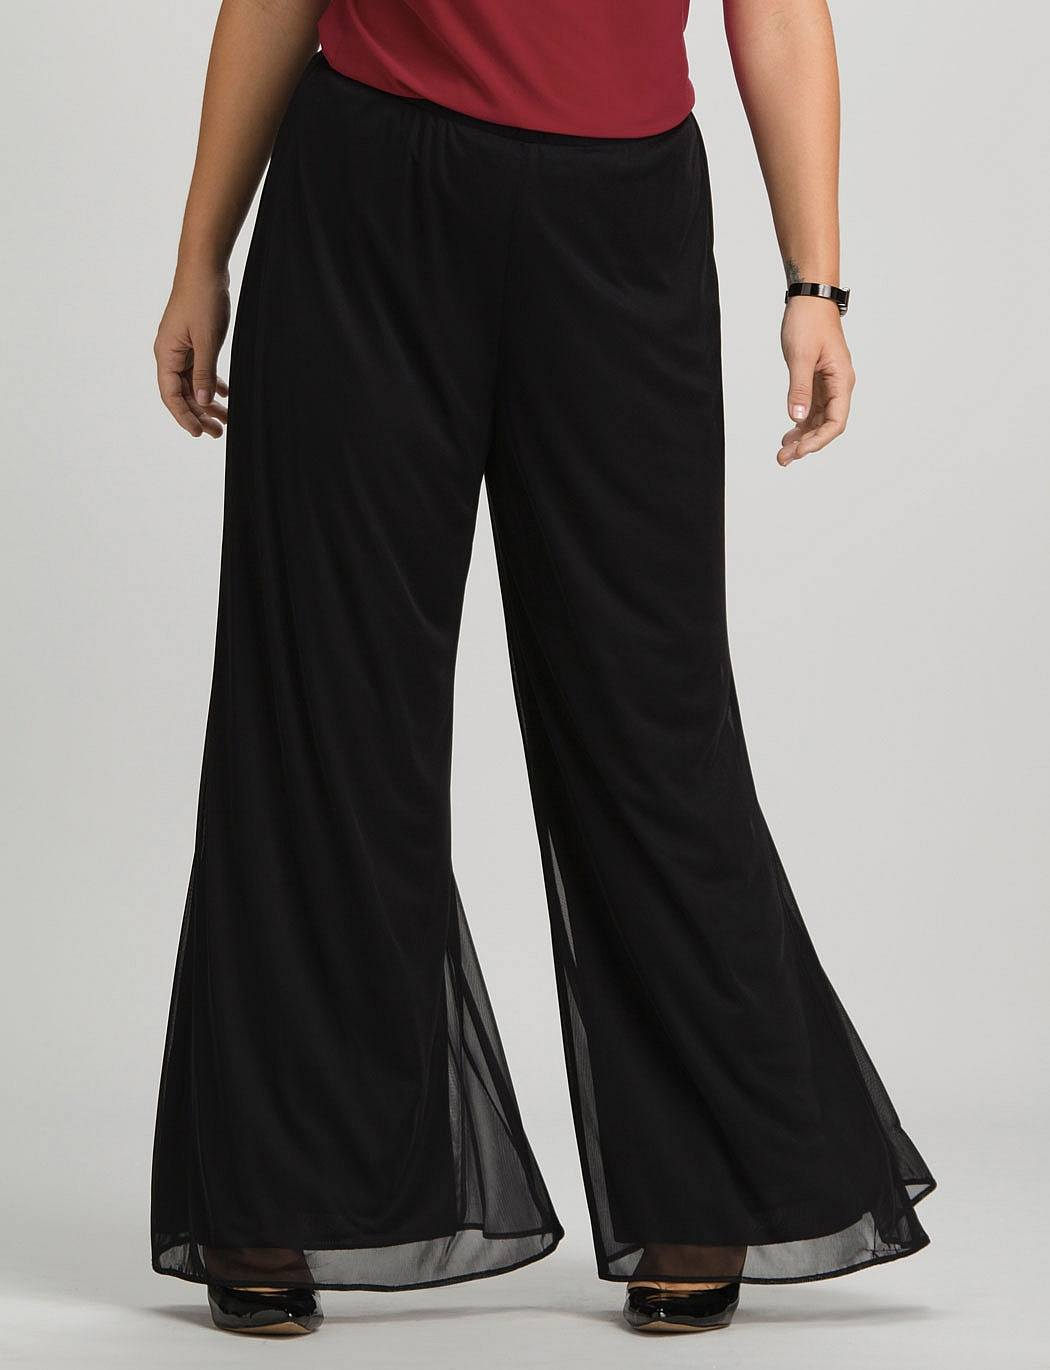 Plus-size-Women-Palazzo-Pants 28 Modern ways to Wear Palazzo Pants with other Outfits